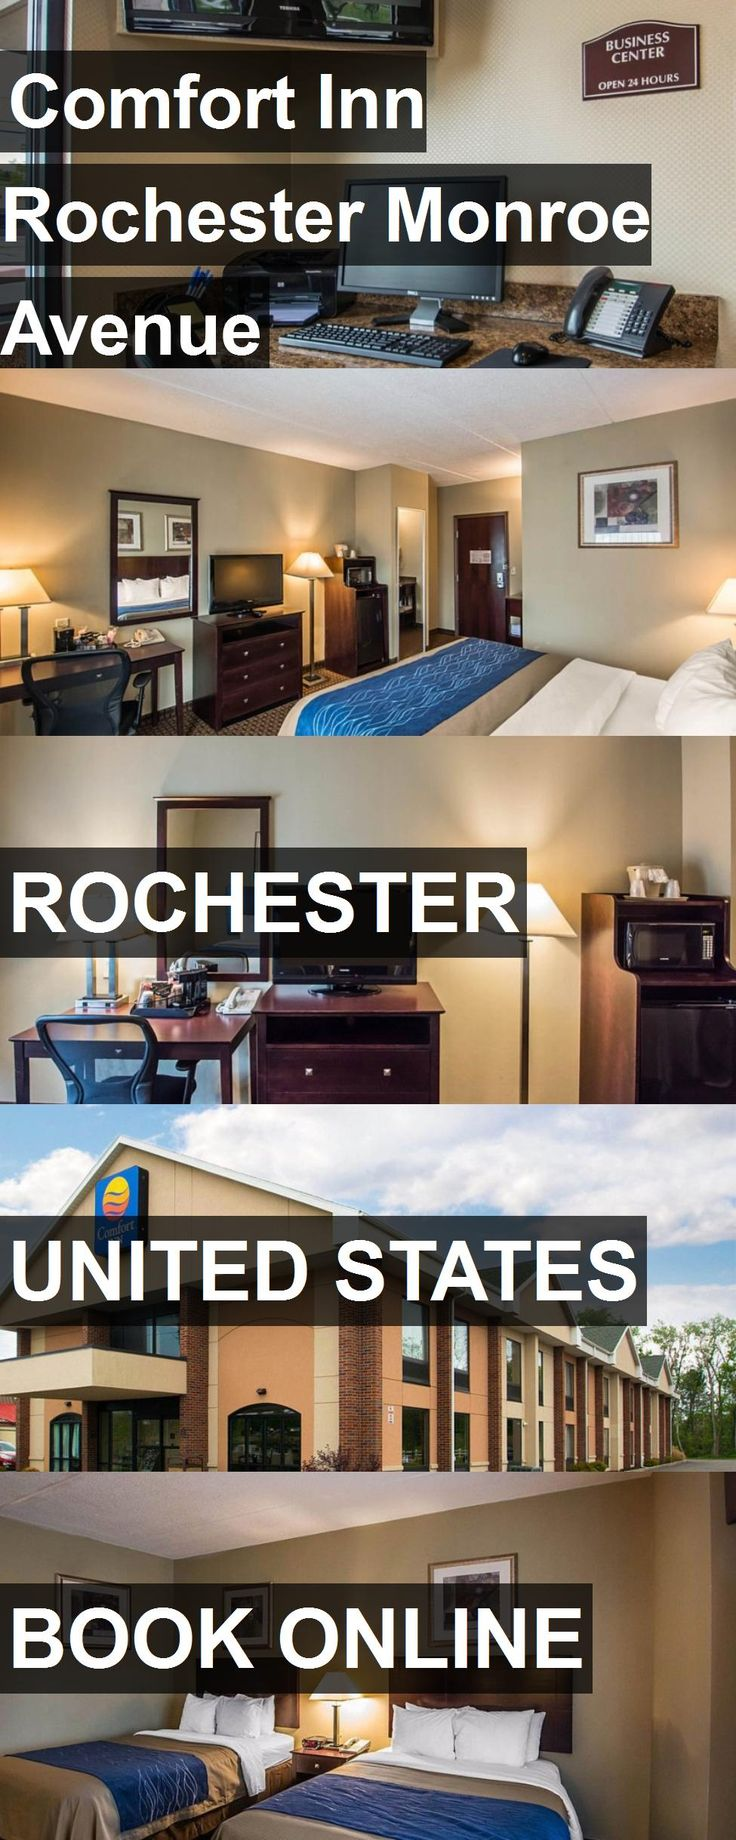 Hotel Comfort Inn Rochester Monroe Avenue in Rochester, United States. For more information, photos, reviews and best prices please follow the link. #UnitedStates #Rochester #travel #vacation #hotel